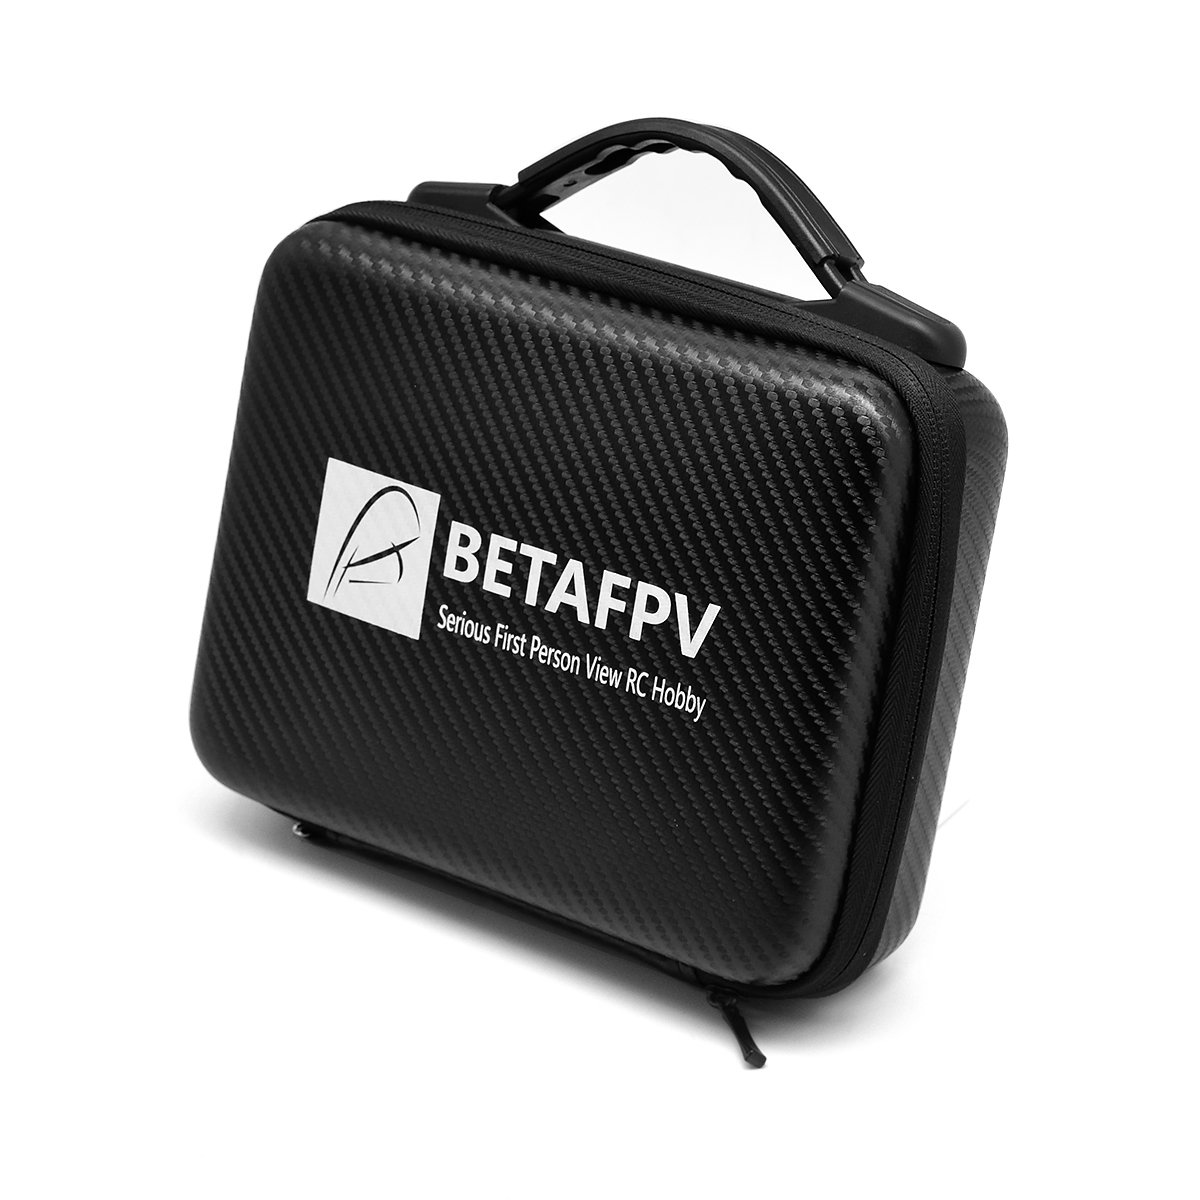 Backpack Carrying Case Blade Inductrix Storage Box With Foam Liner For Tiny Whoop Fpv Racing Drone Eachine Happymodel Mobula7 Remote Control Toys